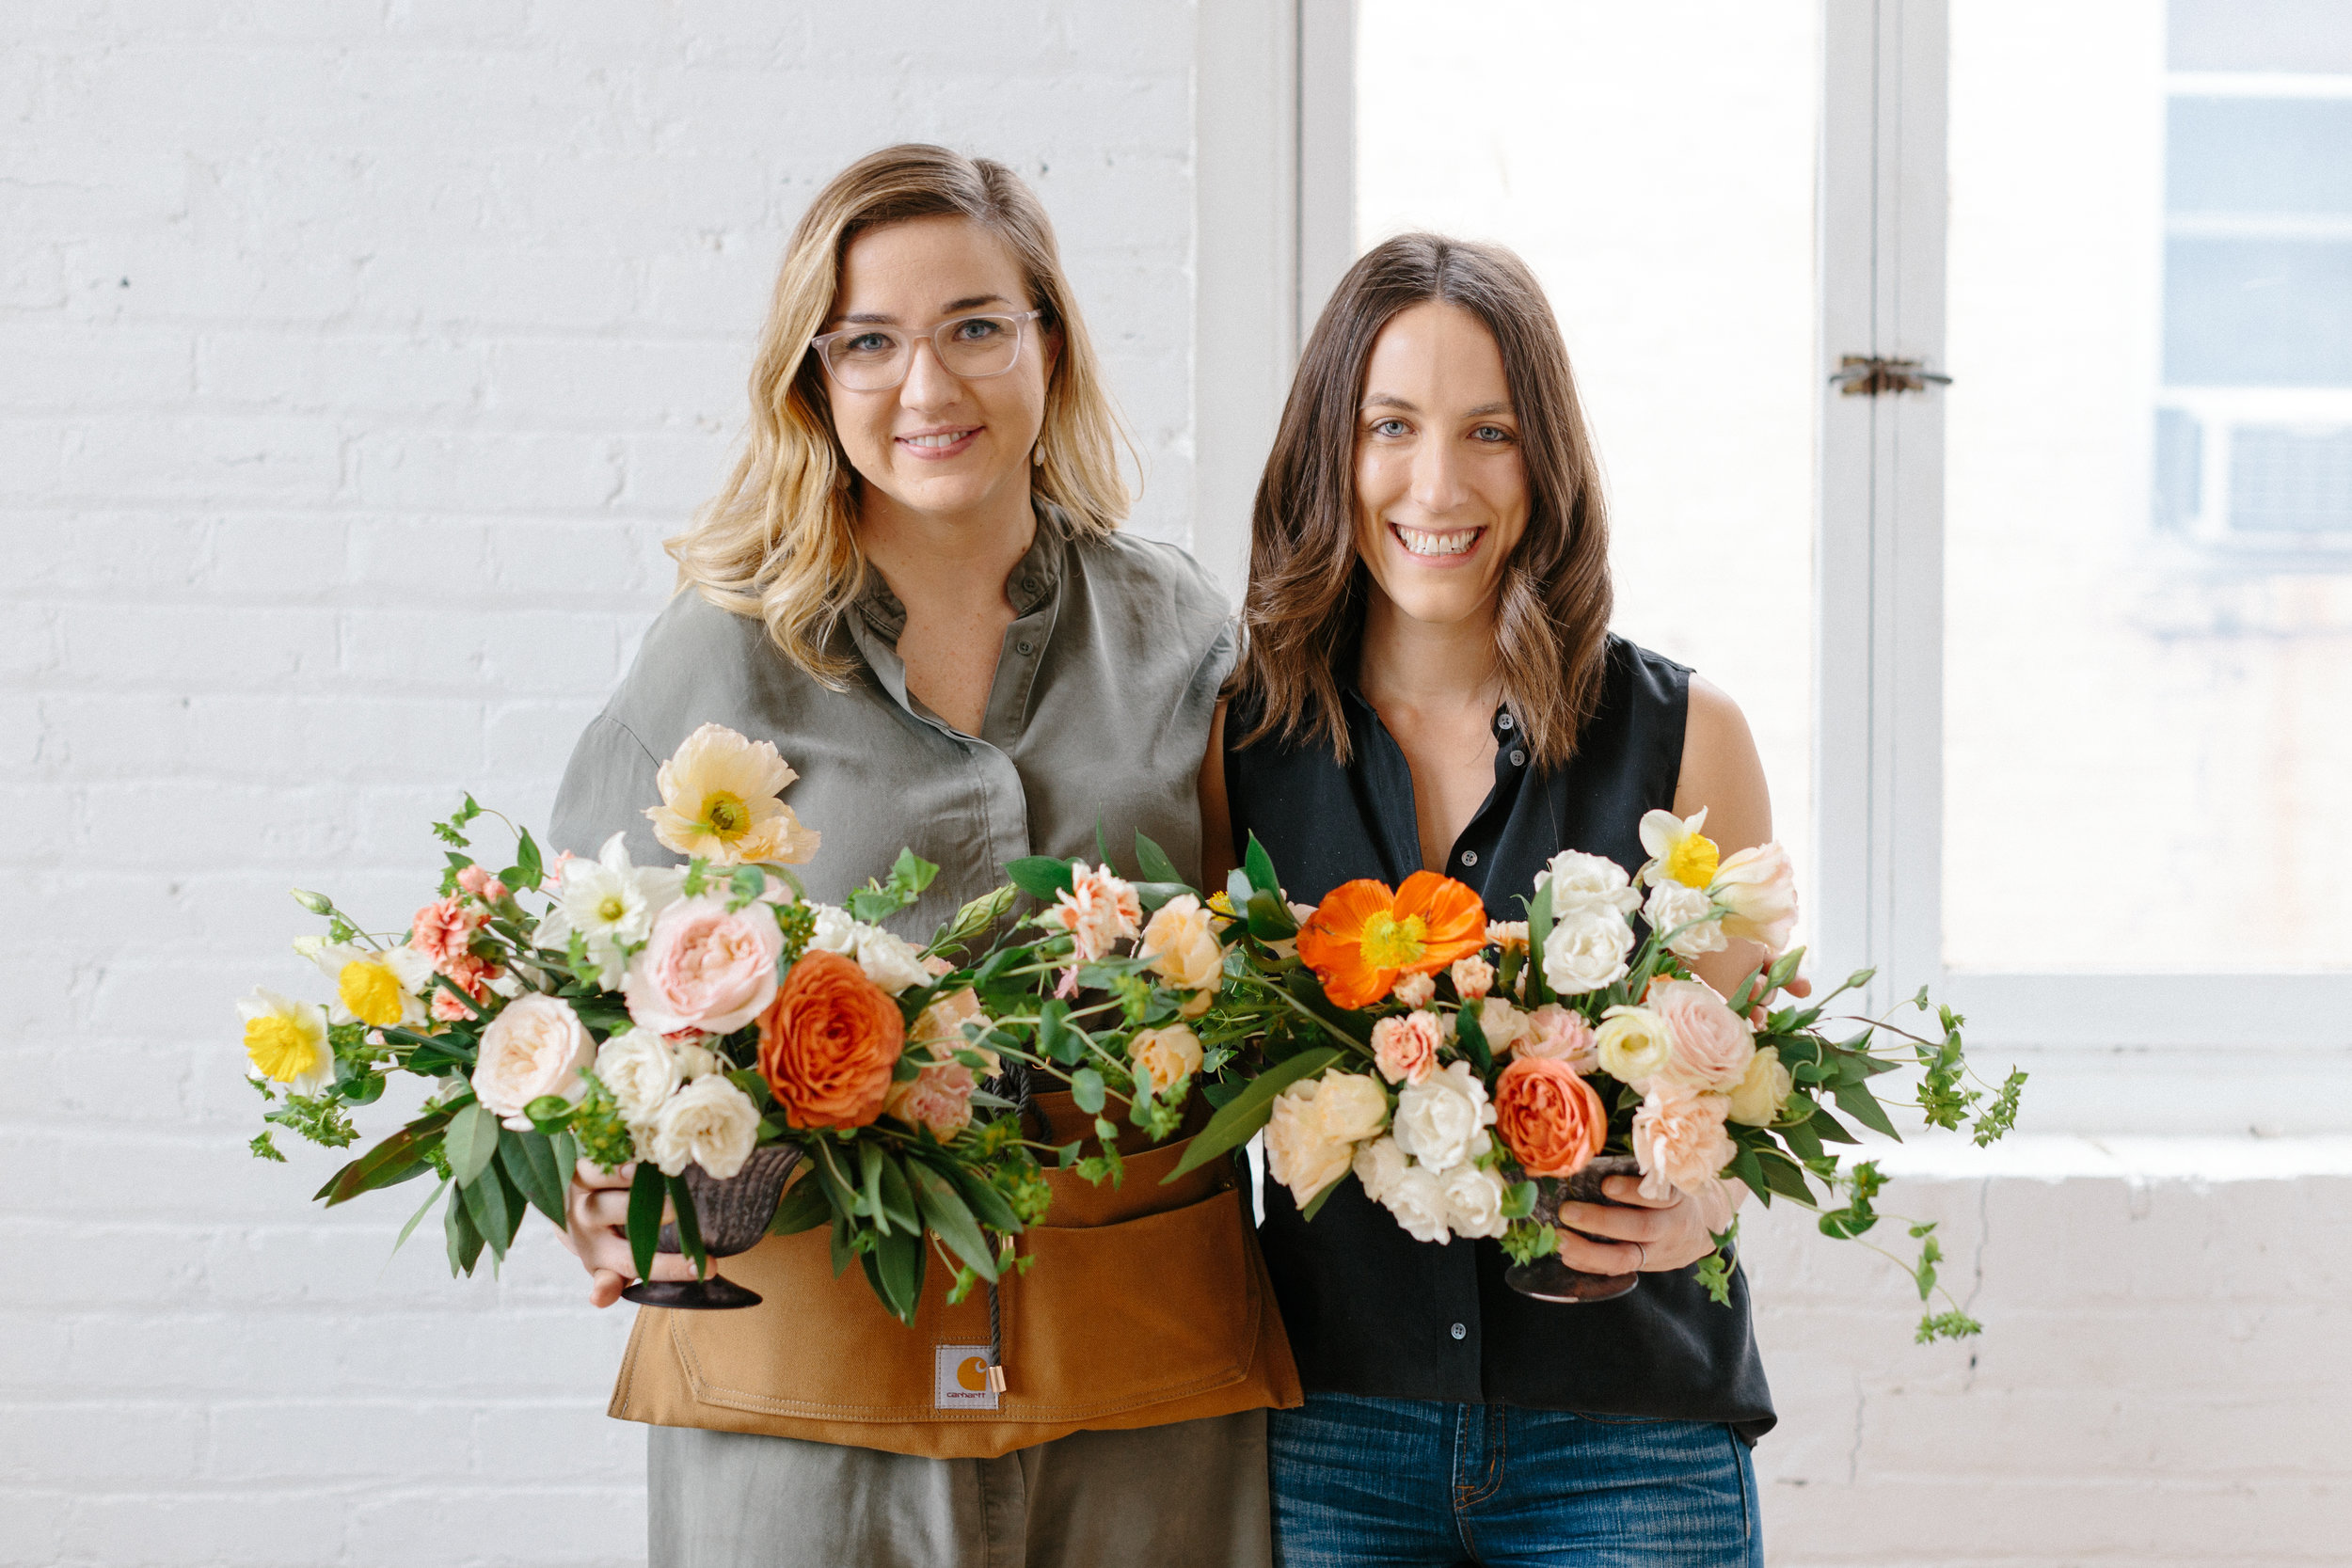 Amy-lauren-floral-design-flower-therapy-workshop-attendees